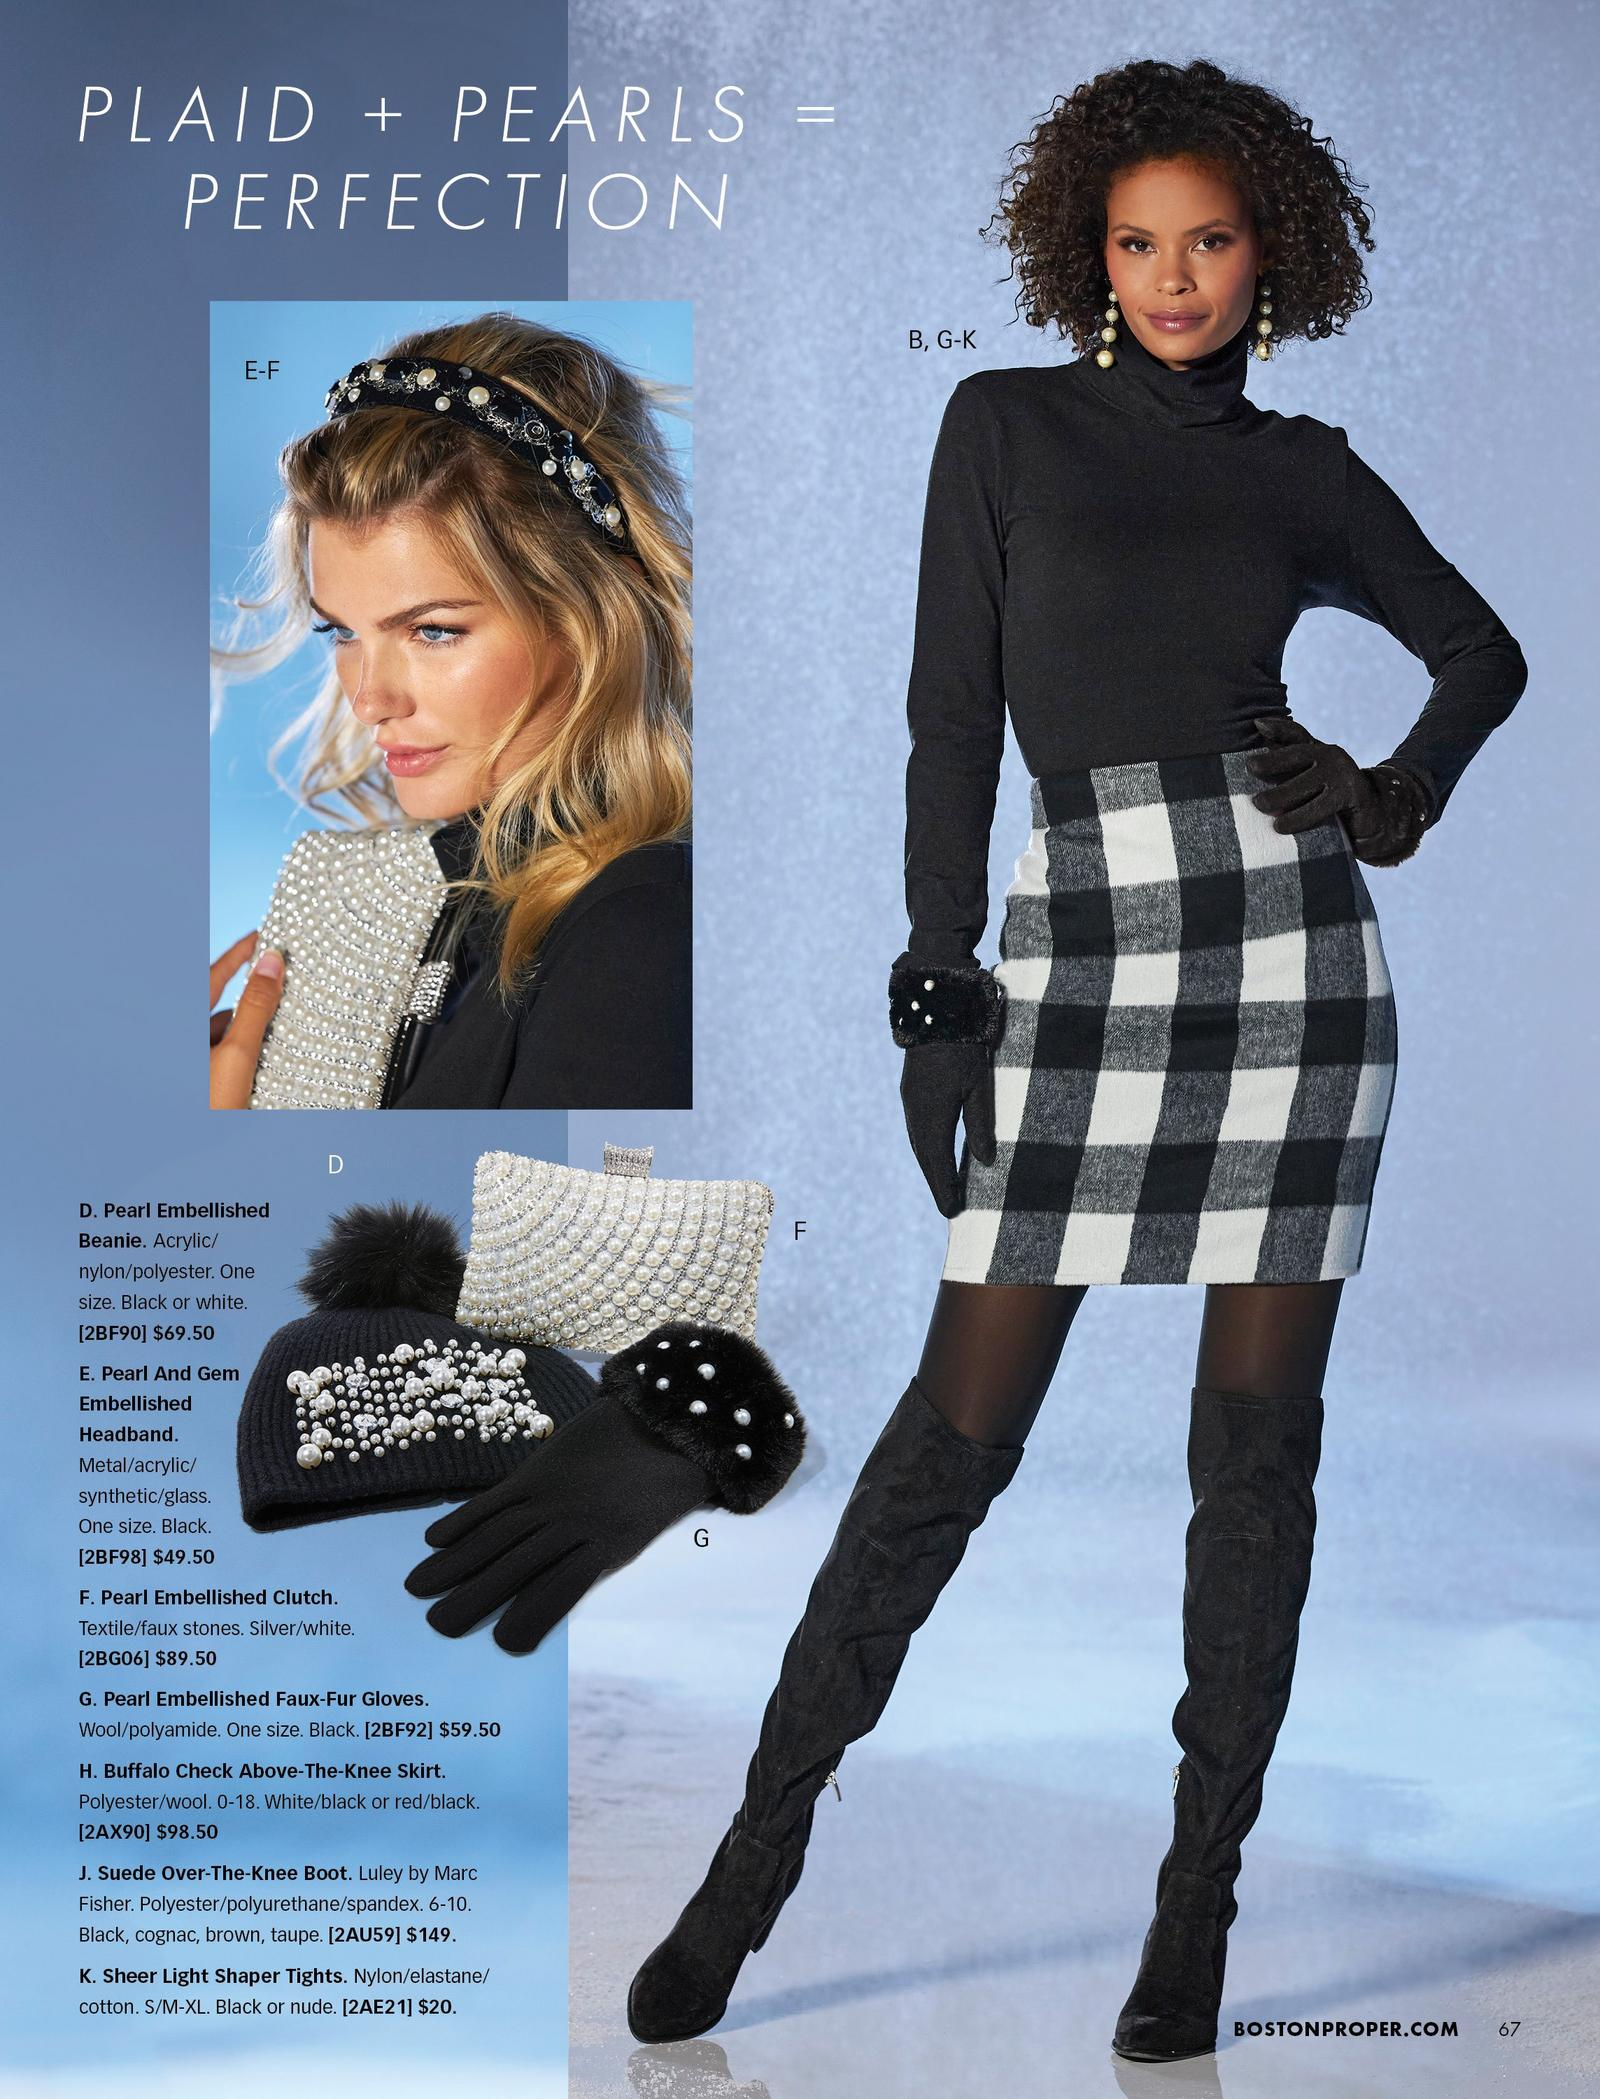 left model wearing a black pearl embellished headband, black turtleneck top, and holding a pearl embellished clutch. right model wearing a black turtleneck long sleeve top, black and white buffalo check above-the-knee skirt, sheer black tights, black over-the-knee suede boots, black pearl embellished faux fur gloves, and pearl strand earrings. also shown: pearl embellished clutch, black faux fur embellished gloves, and black pearl embellished beanie with black pom pom.